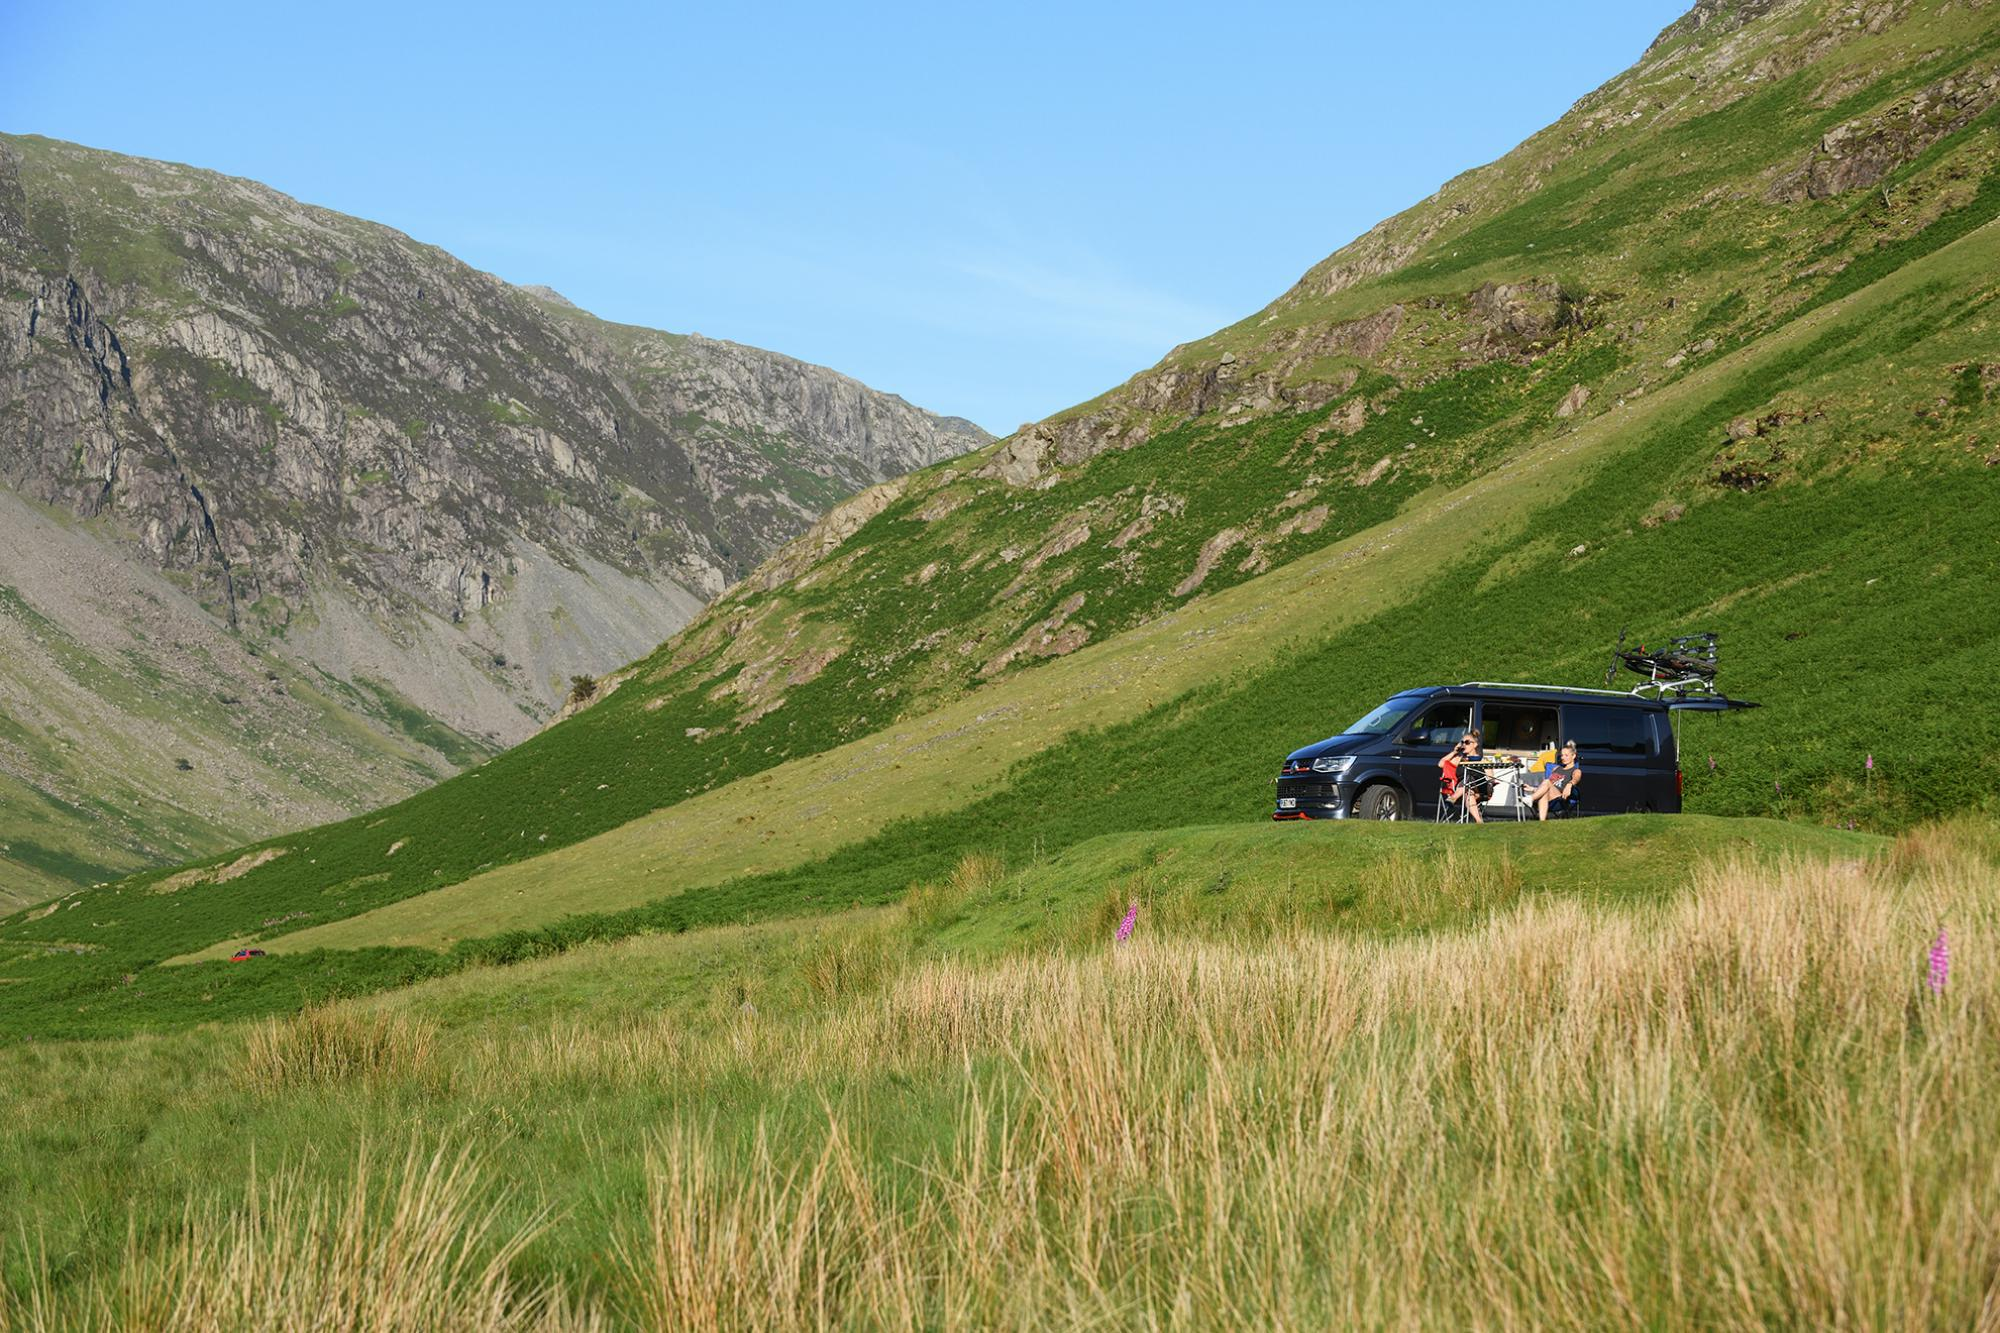 Campervan hire in the Lake District | Campervan rental companies in the Lake District National Park